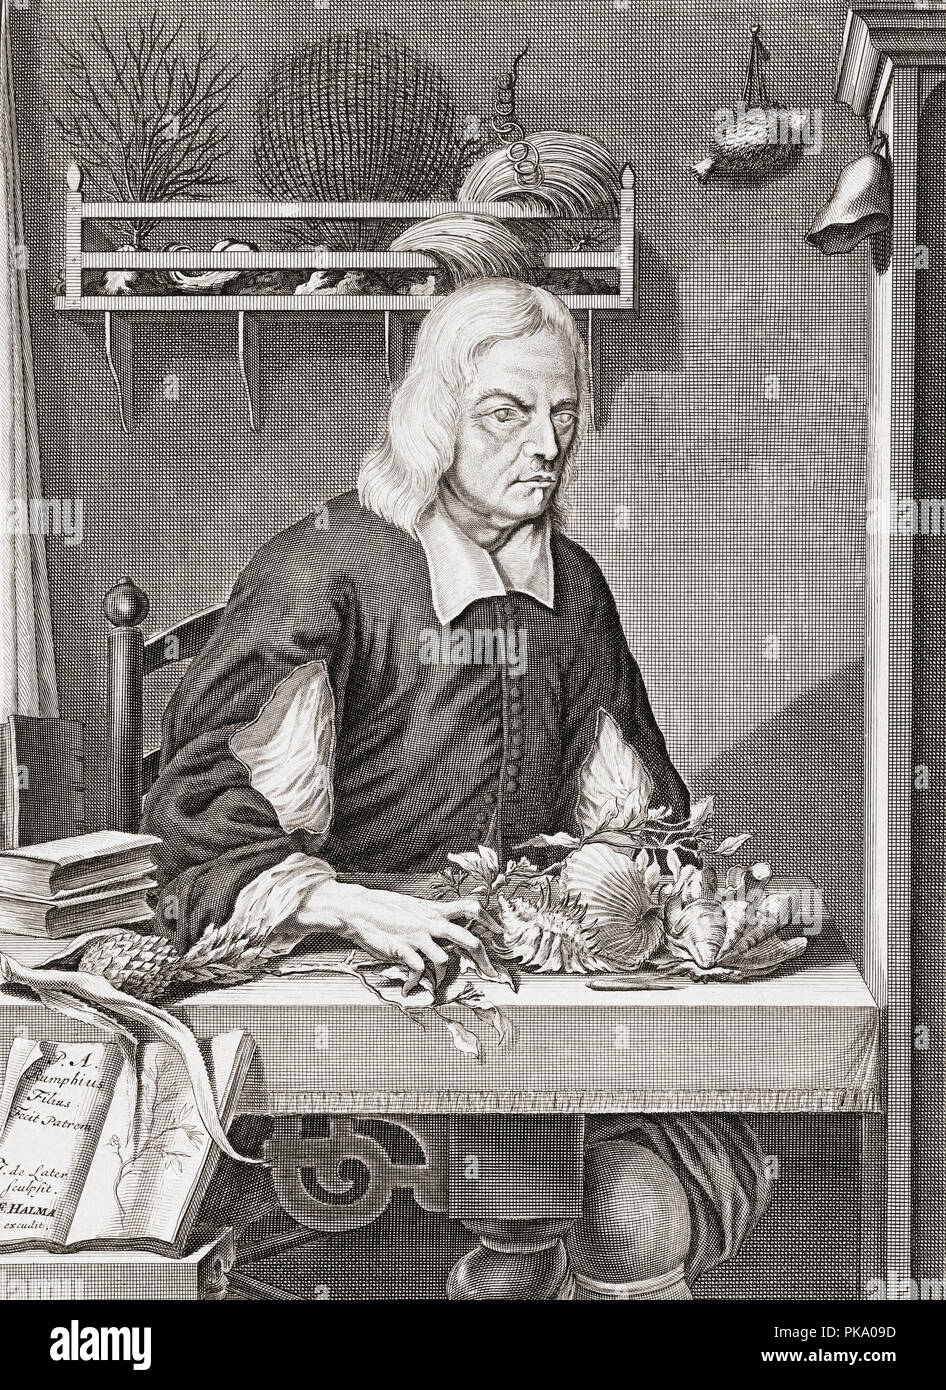 Georg Eberhard Rumphius, 1627 – 1702. German-born botanist employed by the Dutch East India Company.  Author of Herbarium Amboinense. After a portrait by his son Paul Augustus Rumphius. - Stock Image